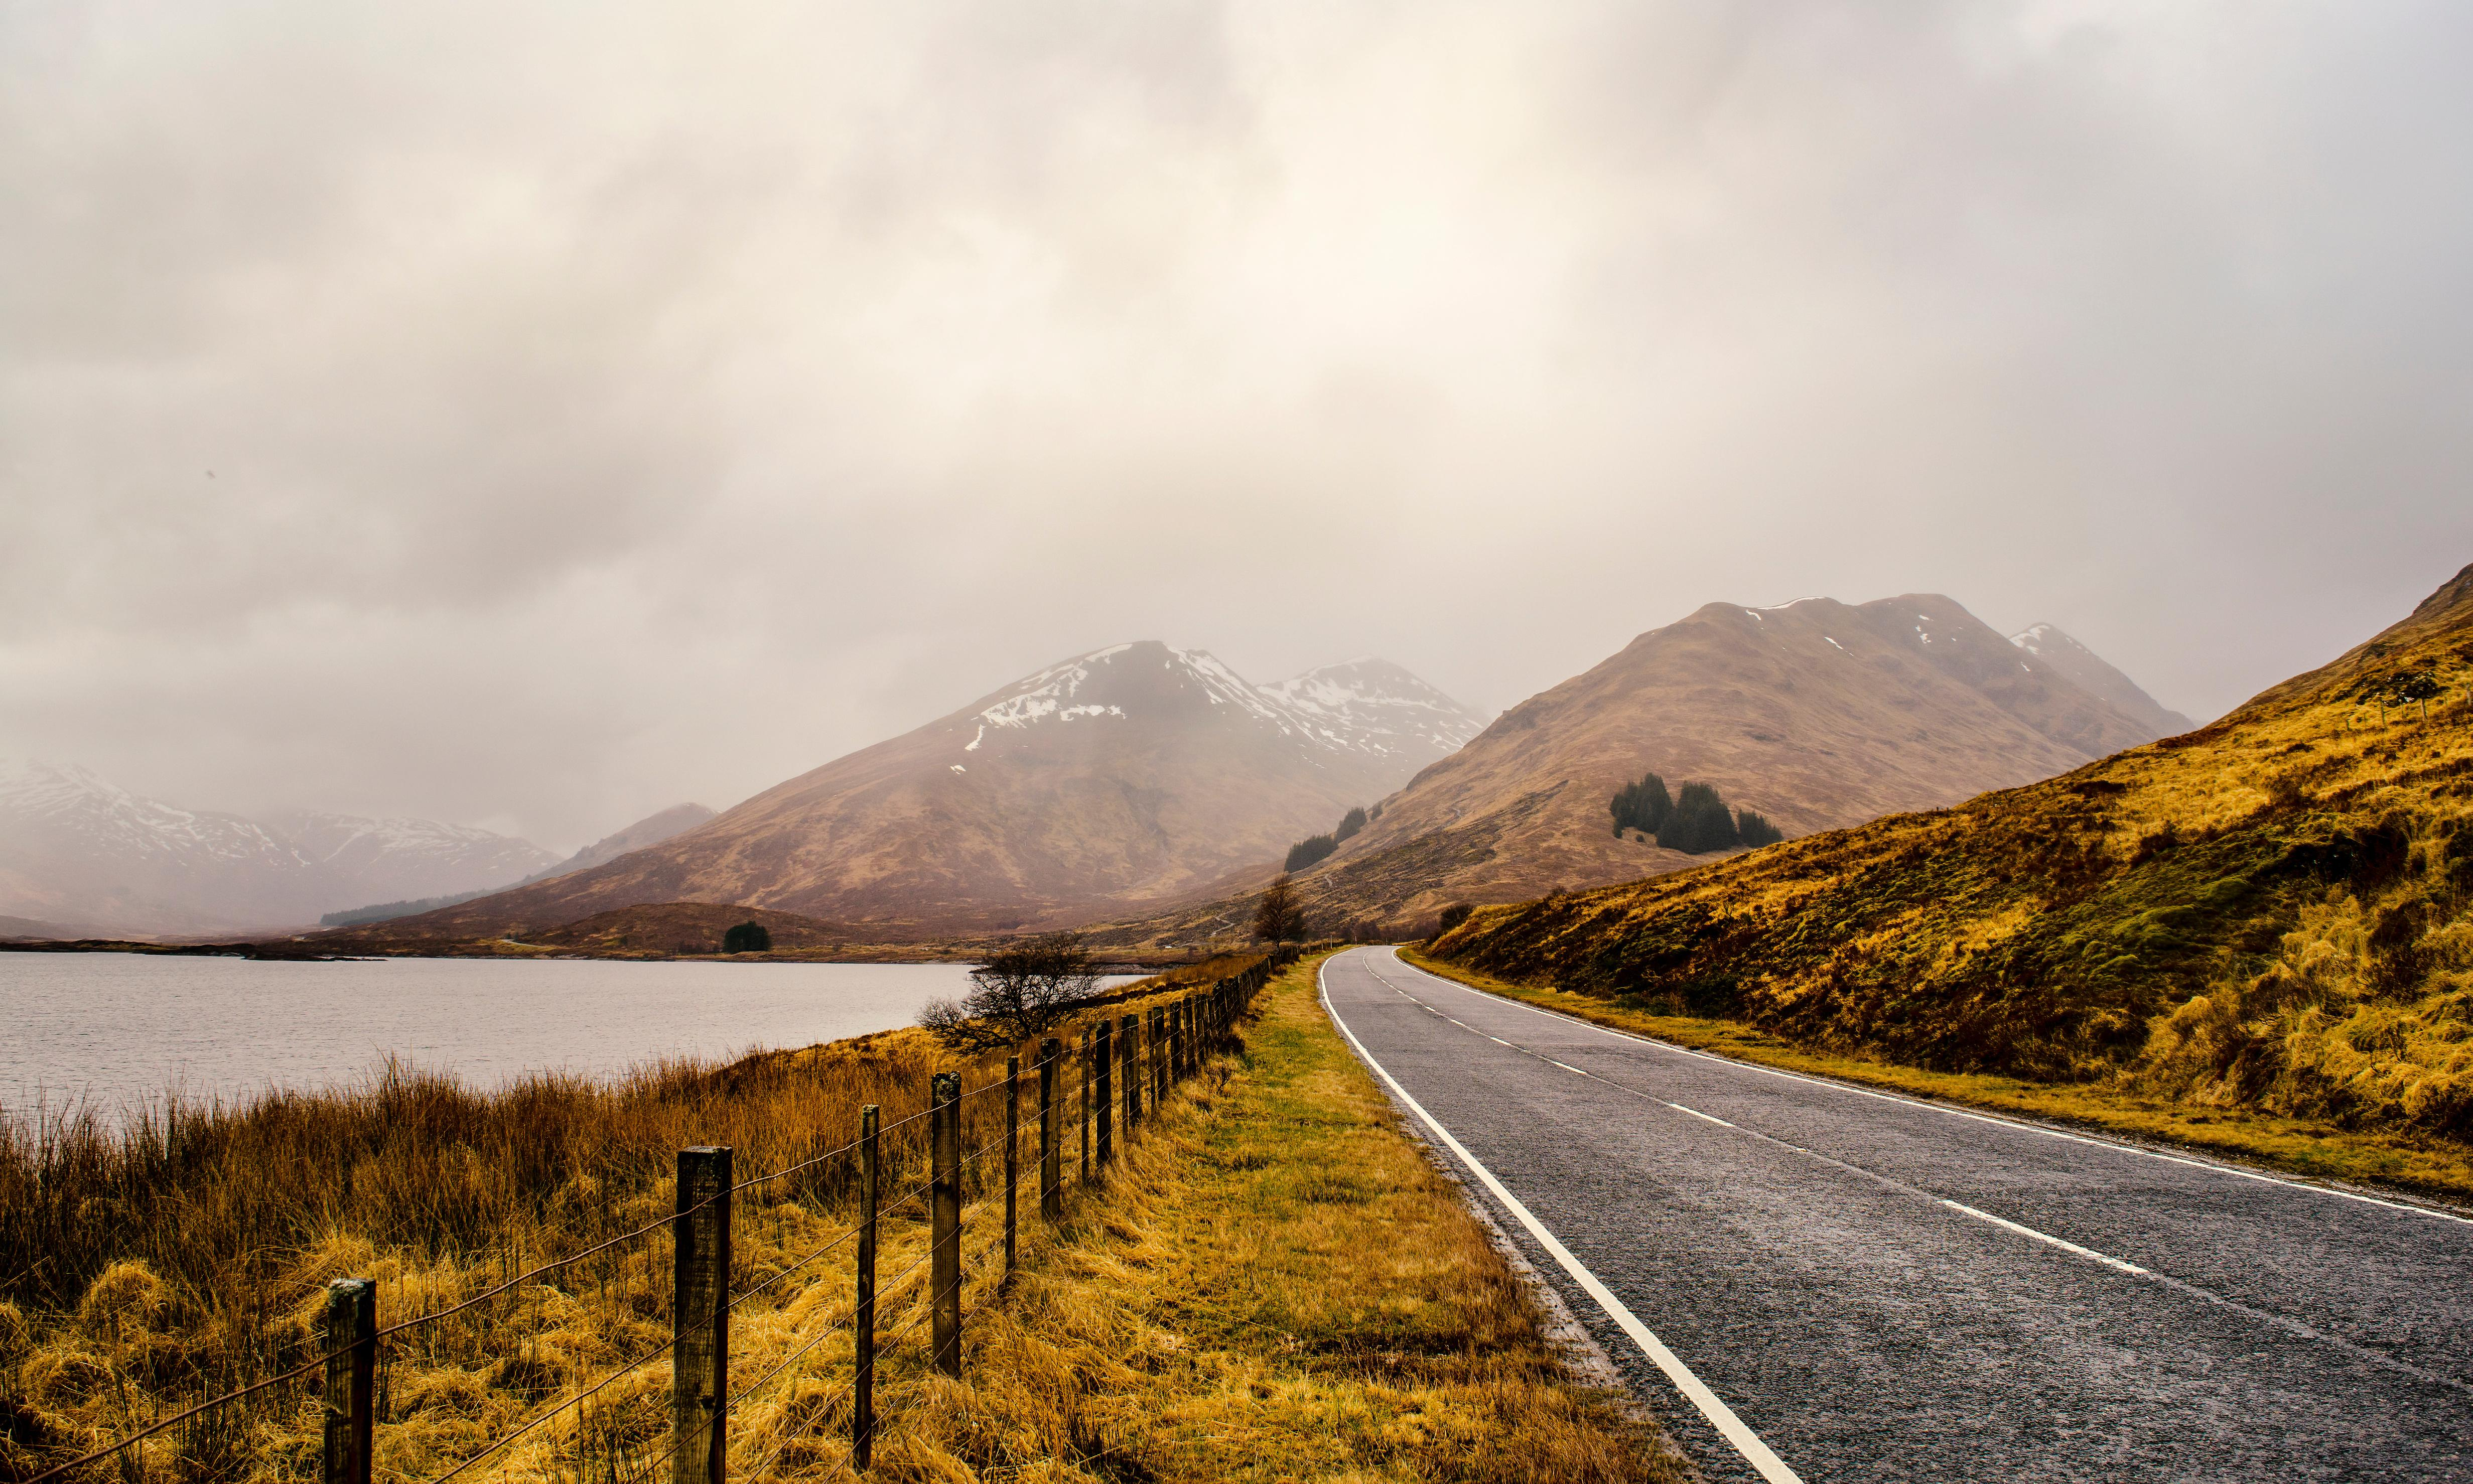 The North Coast 500 route: getting the best out of Scotland's 'Route 66'